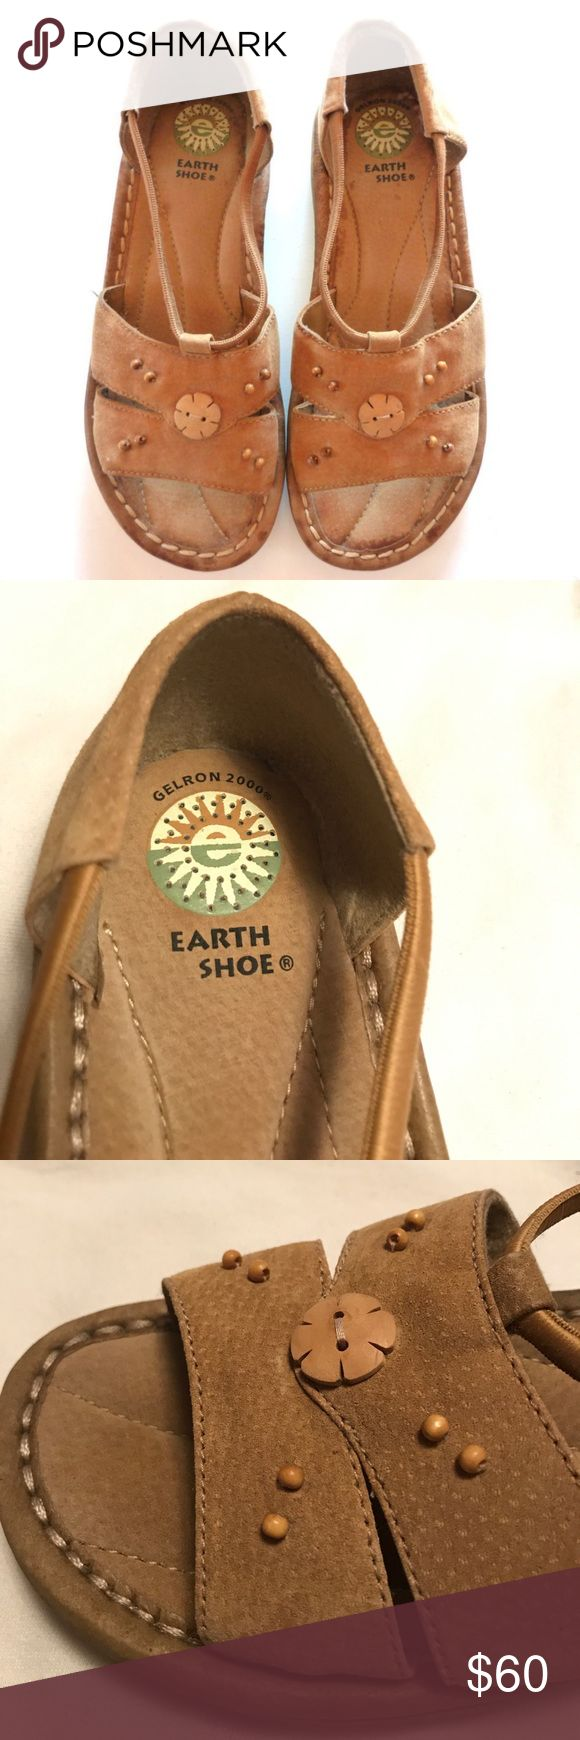 "Earth Shoes Genuine Suede Leather W/Beaded Top Earth Shoes with Gelron 2000 Heel in Womens size 7 1/2 W. These measure 3 1/2"" wide, are Genuine Suede Leather with Beaded Top. 🔥Never Been Worn 🔥 Earth Shoe Shoes Sandals"